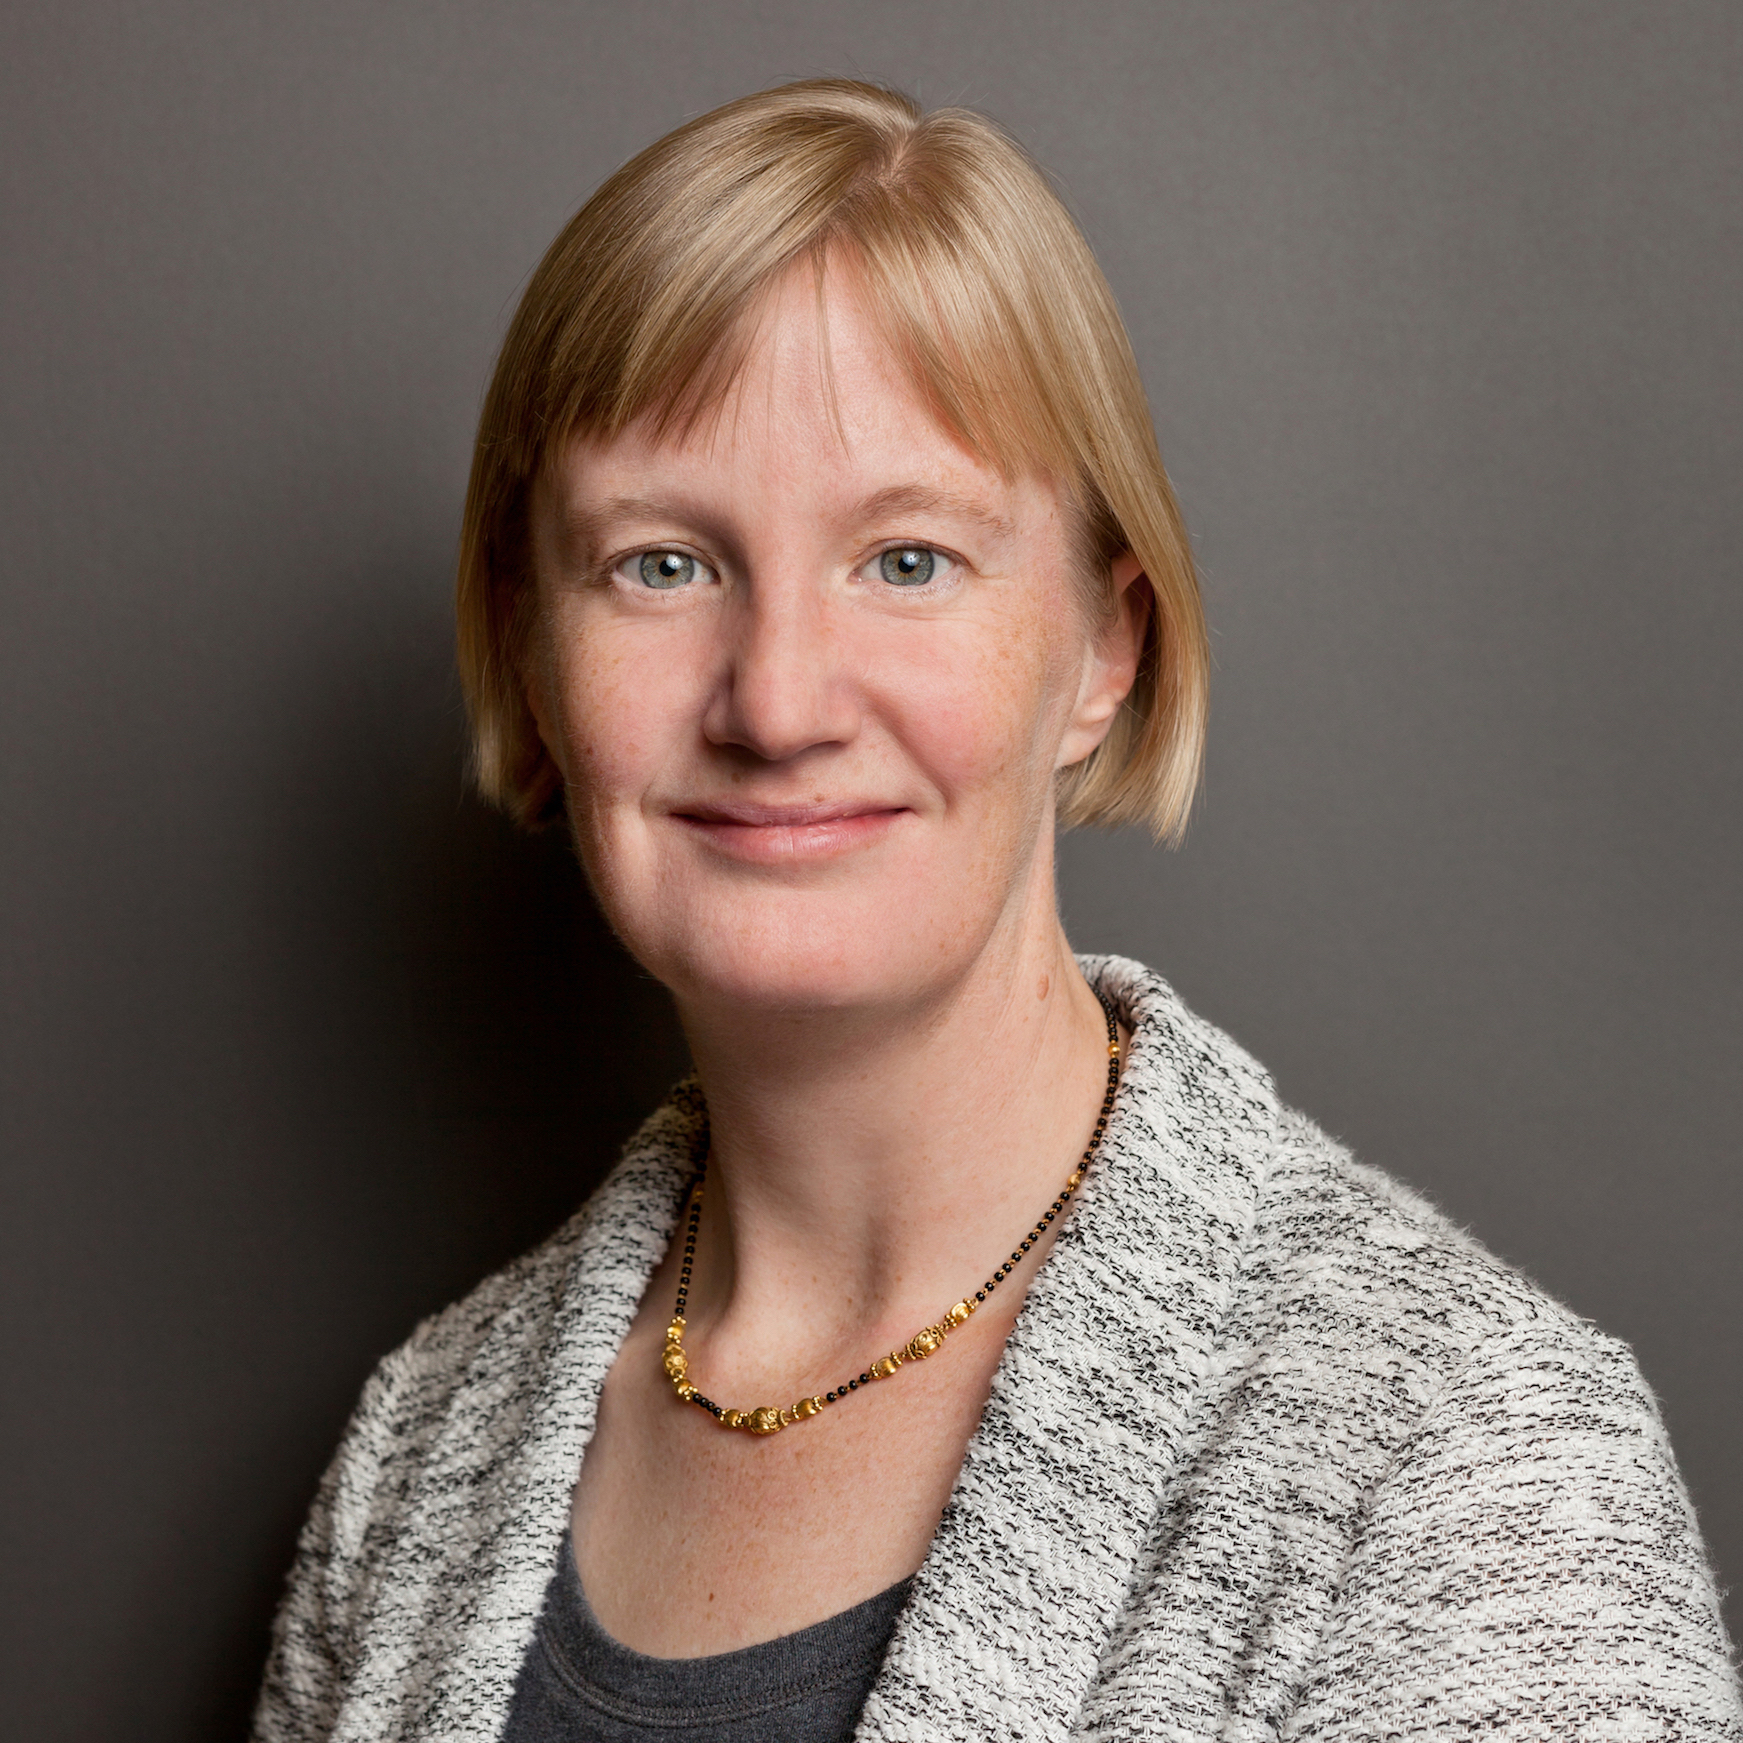 Jacqueline Ashmore - Executive Director and Research Associate Professor, Department of Mechanical Engineering, Boston University